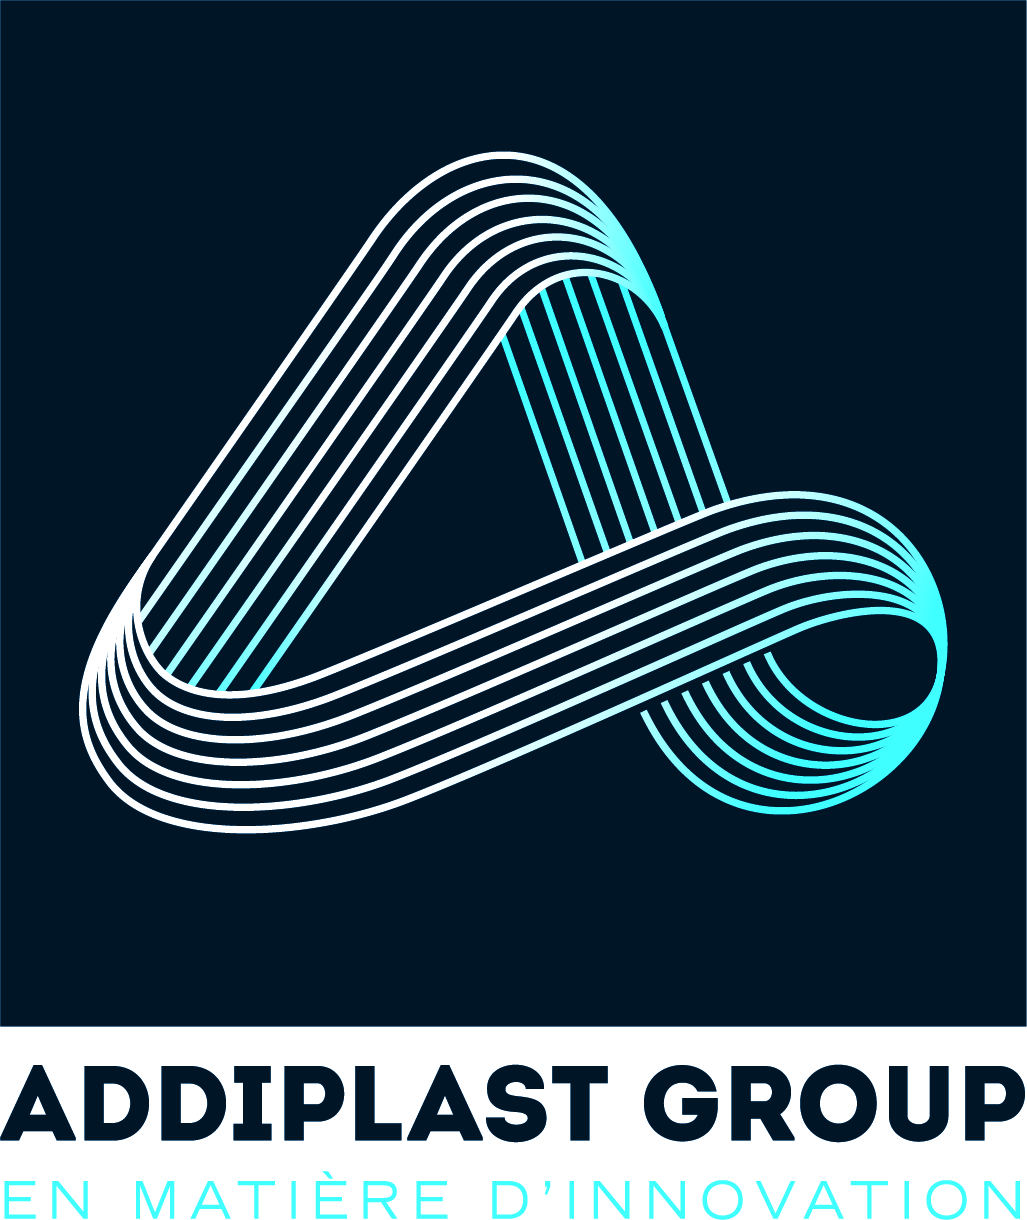 ADDIPLAST GROUP